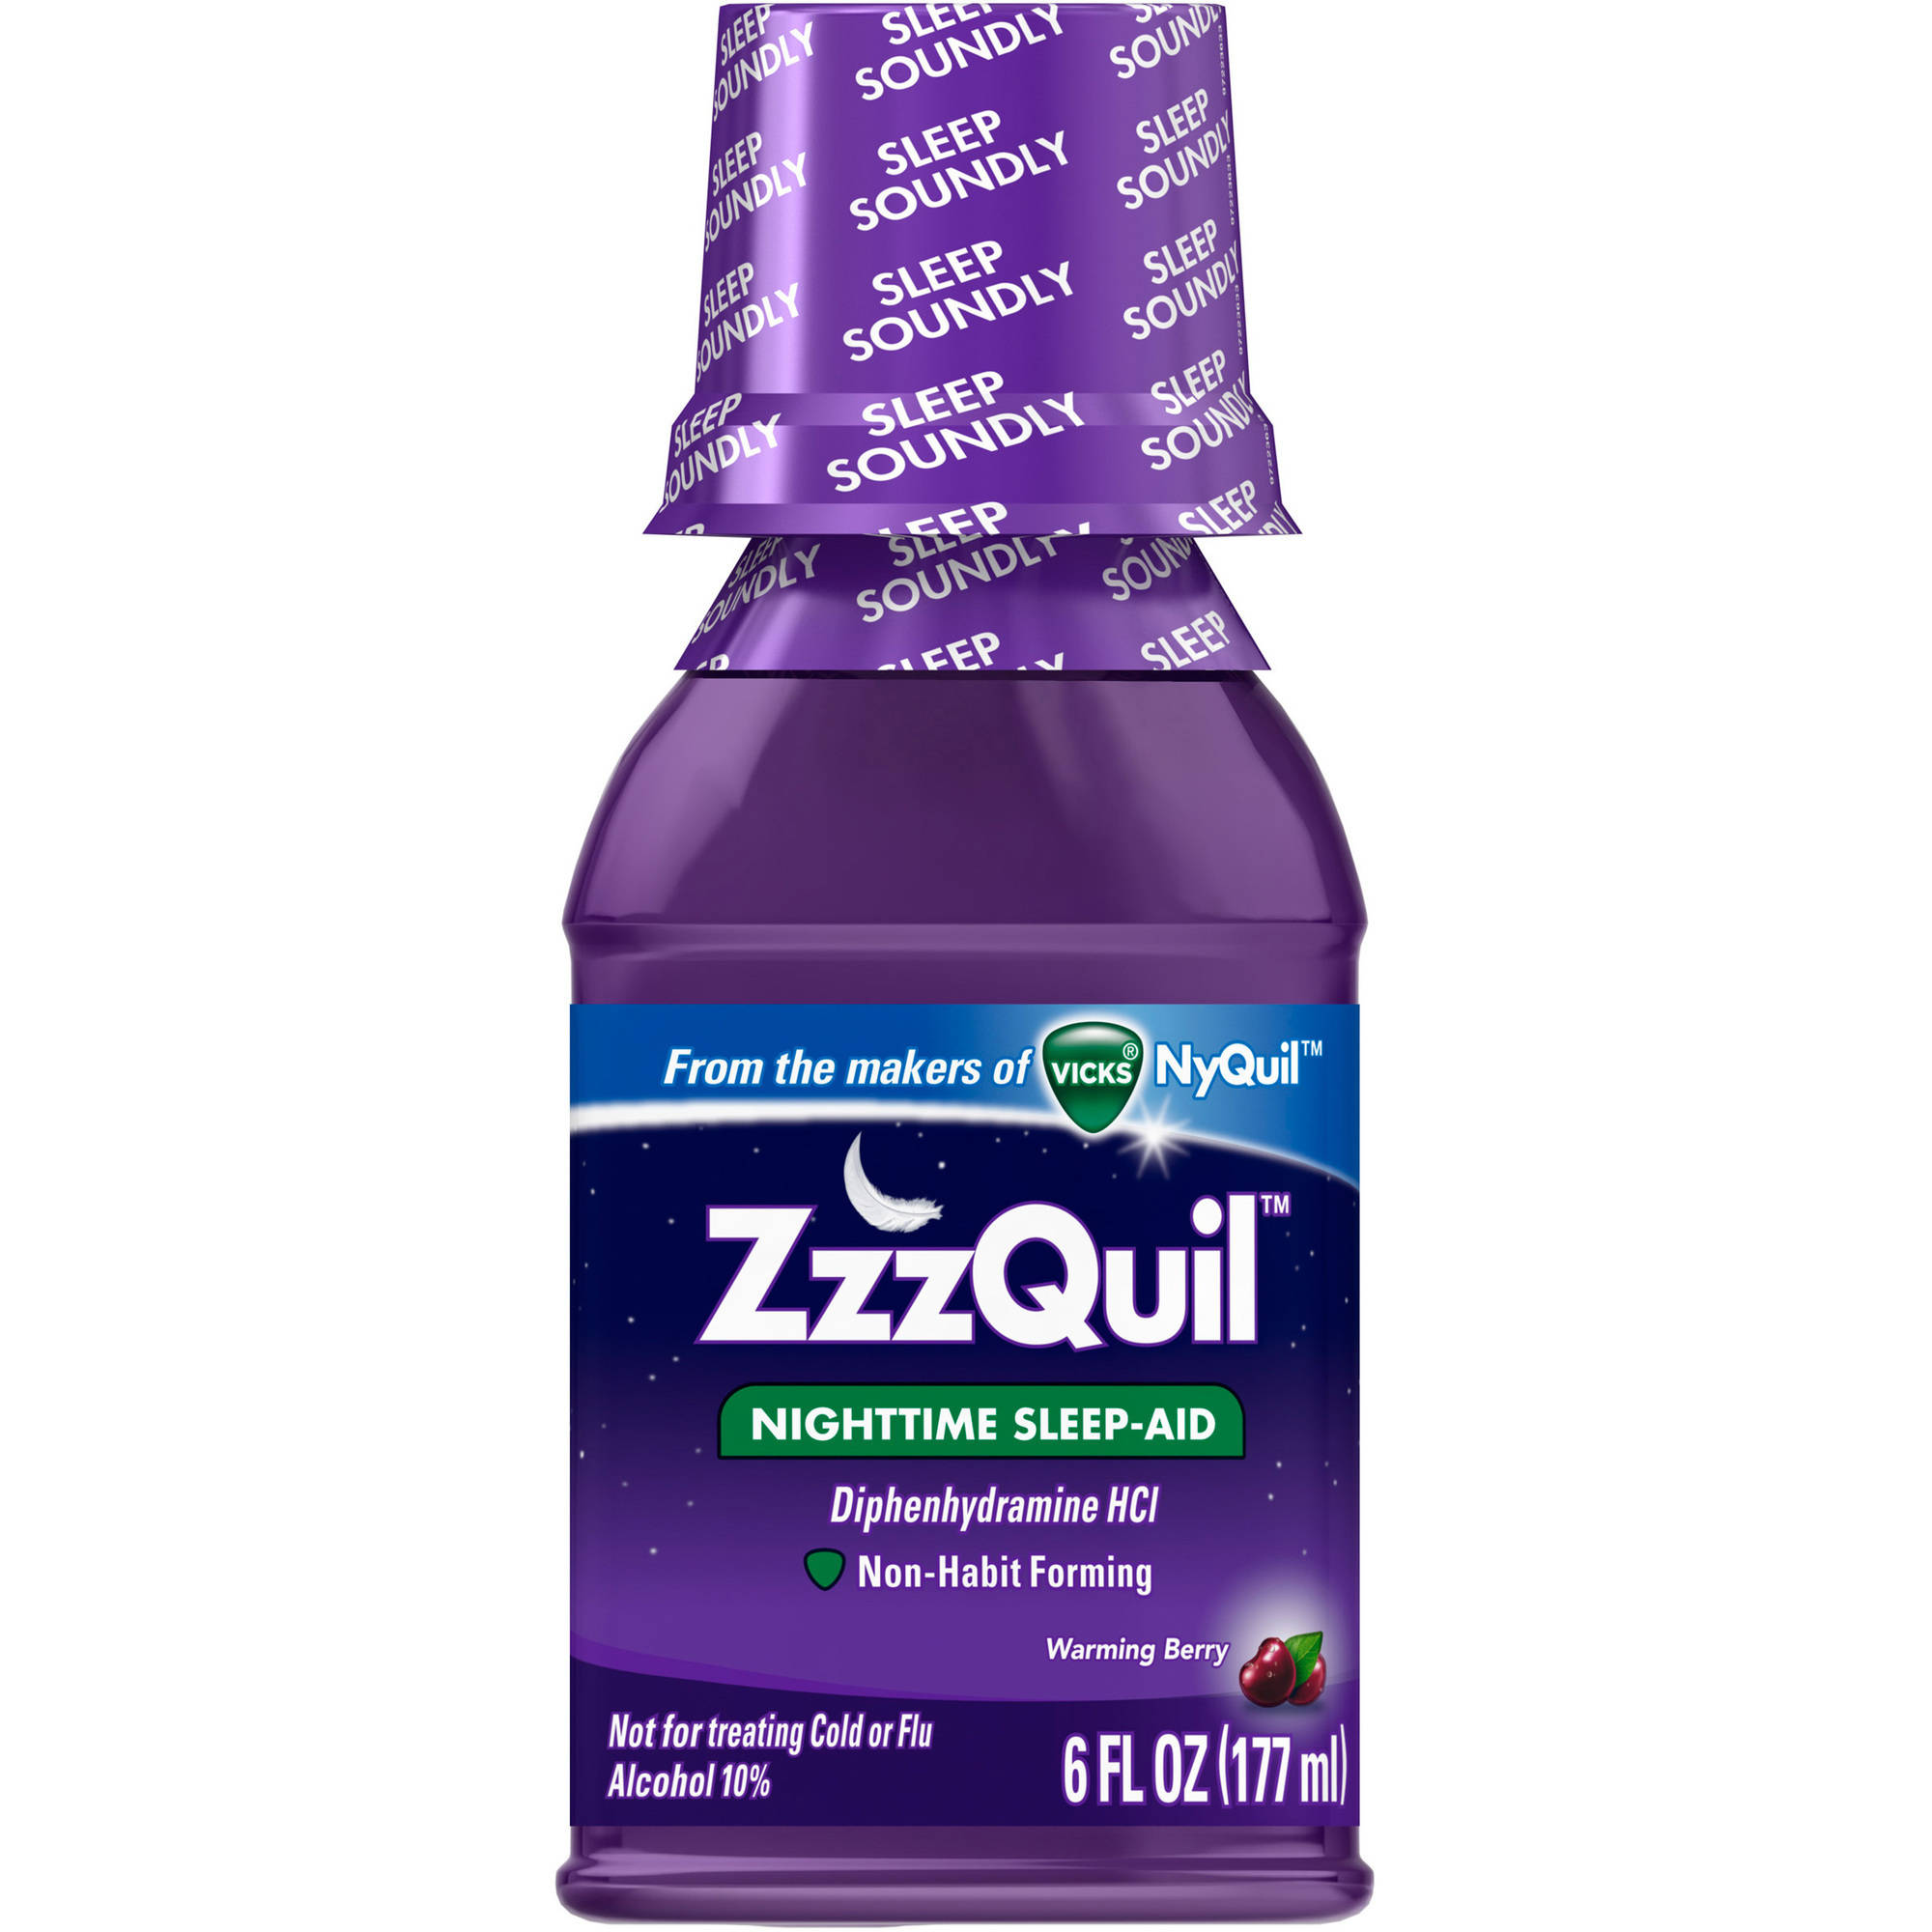 ZzzQuil Nighttime Sleep-Aid Warming Berry Liquid, 6 fl oz